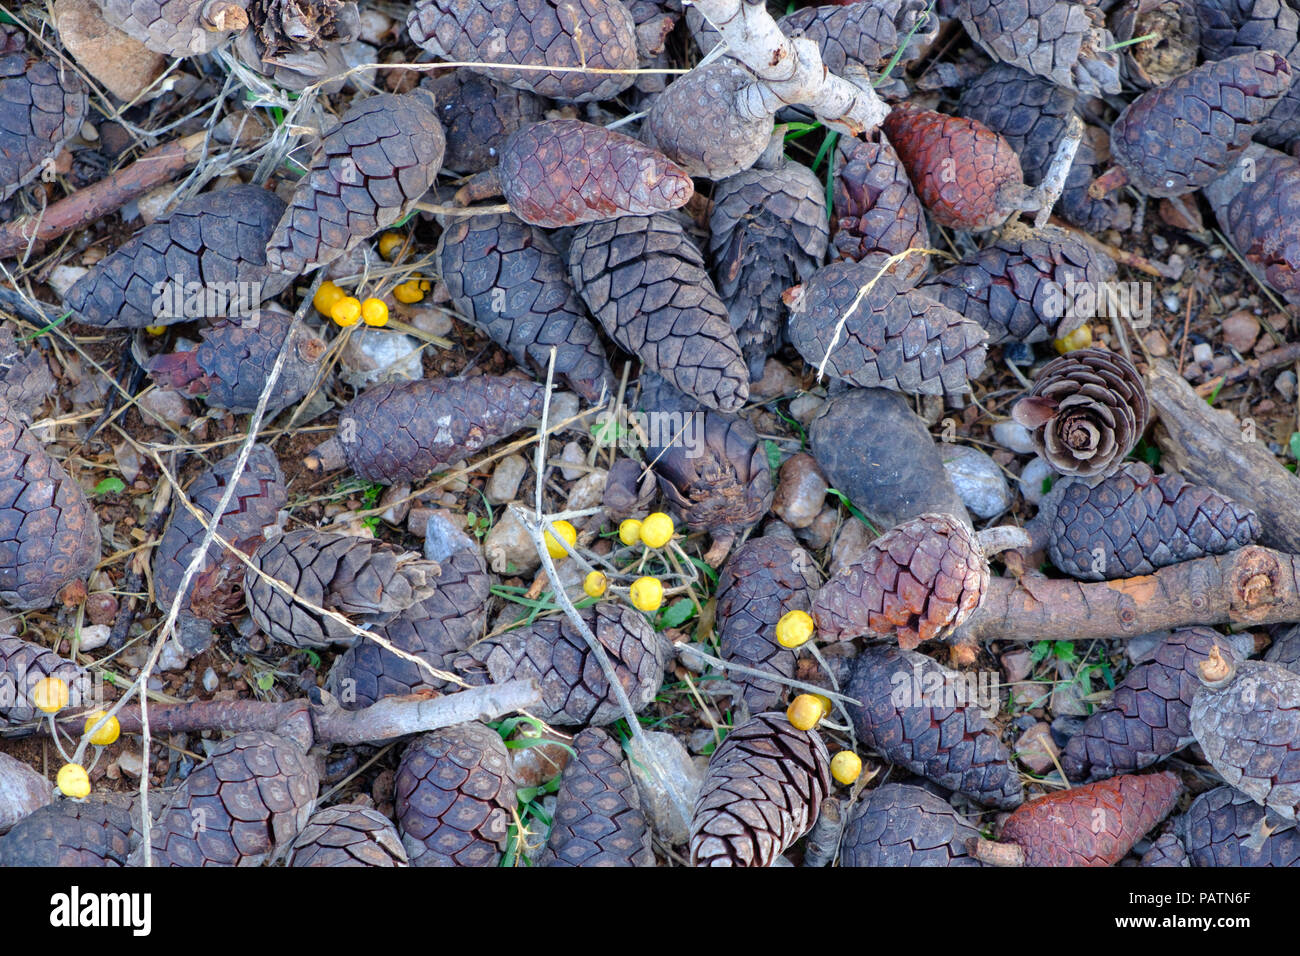 Pinecones ( κουκουνάρα ) of different colours scattered on the floor after a mountain fires clear up. Saronida, East Attica, Greece, Europe. Stock Photo